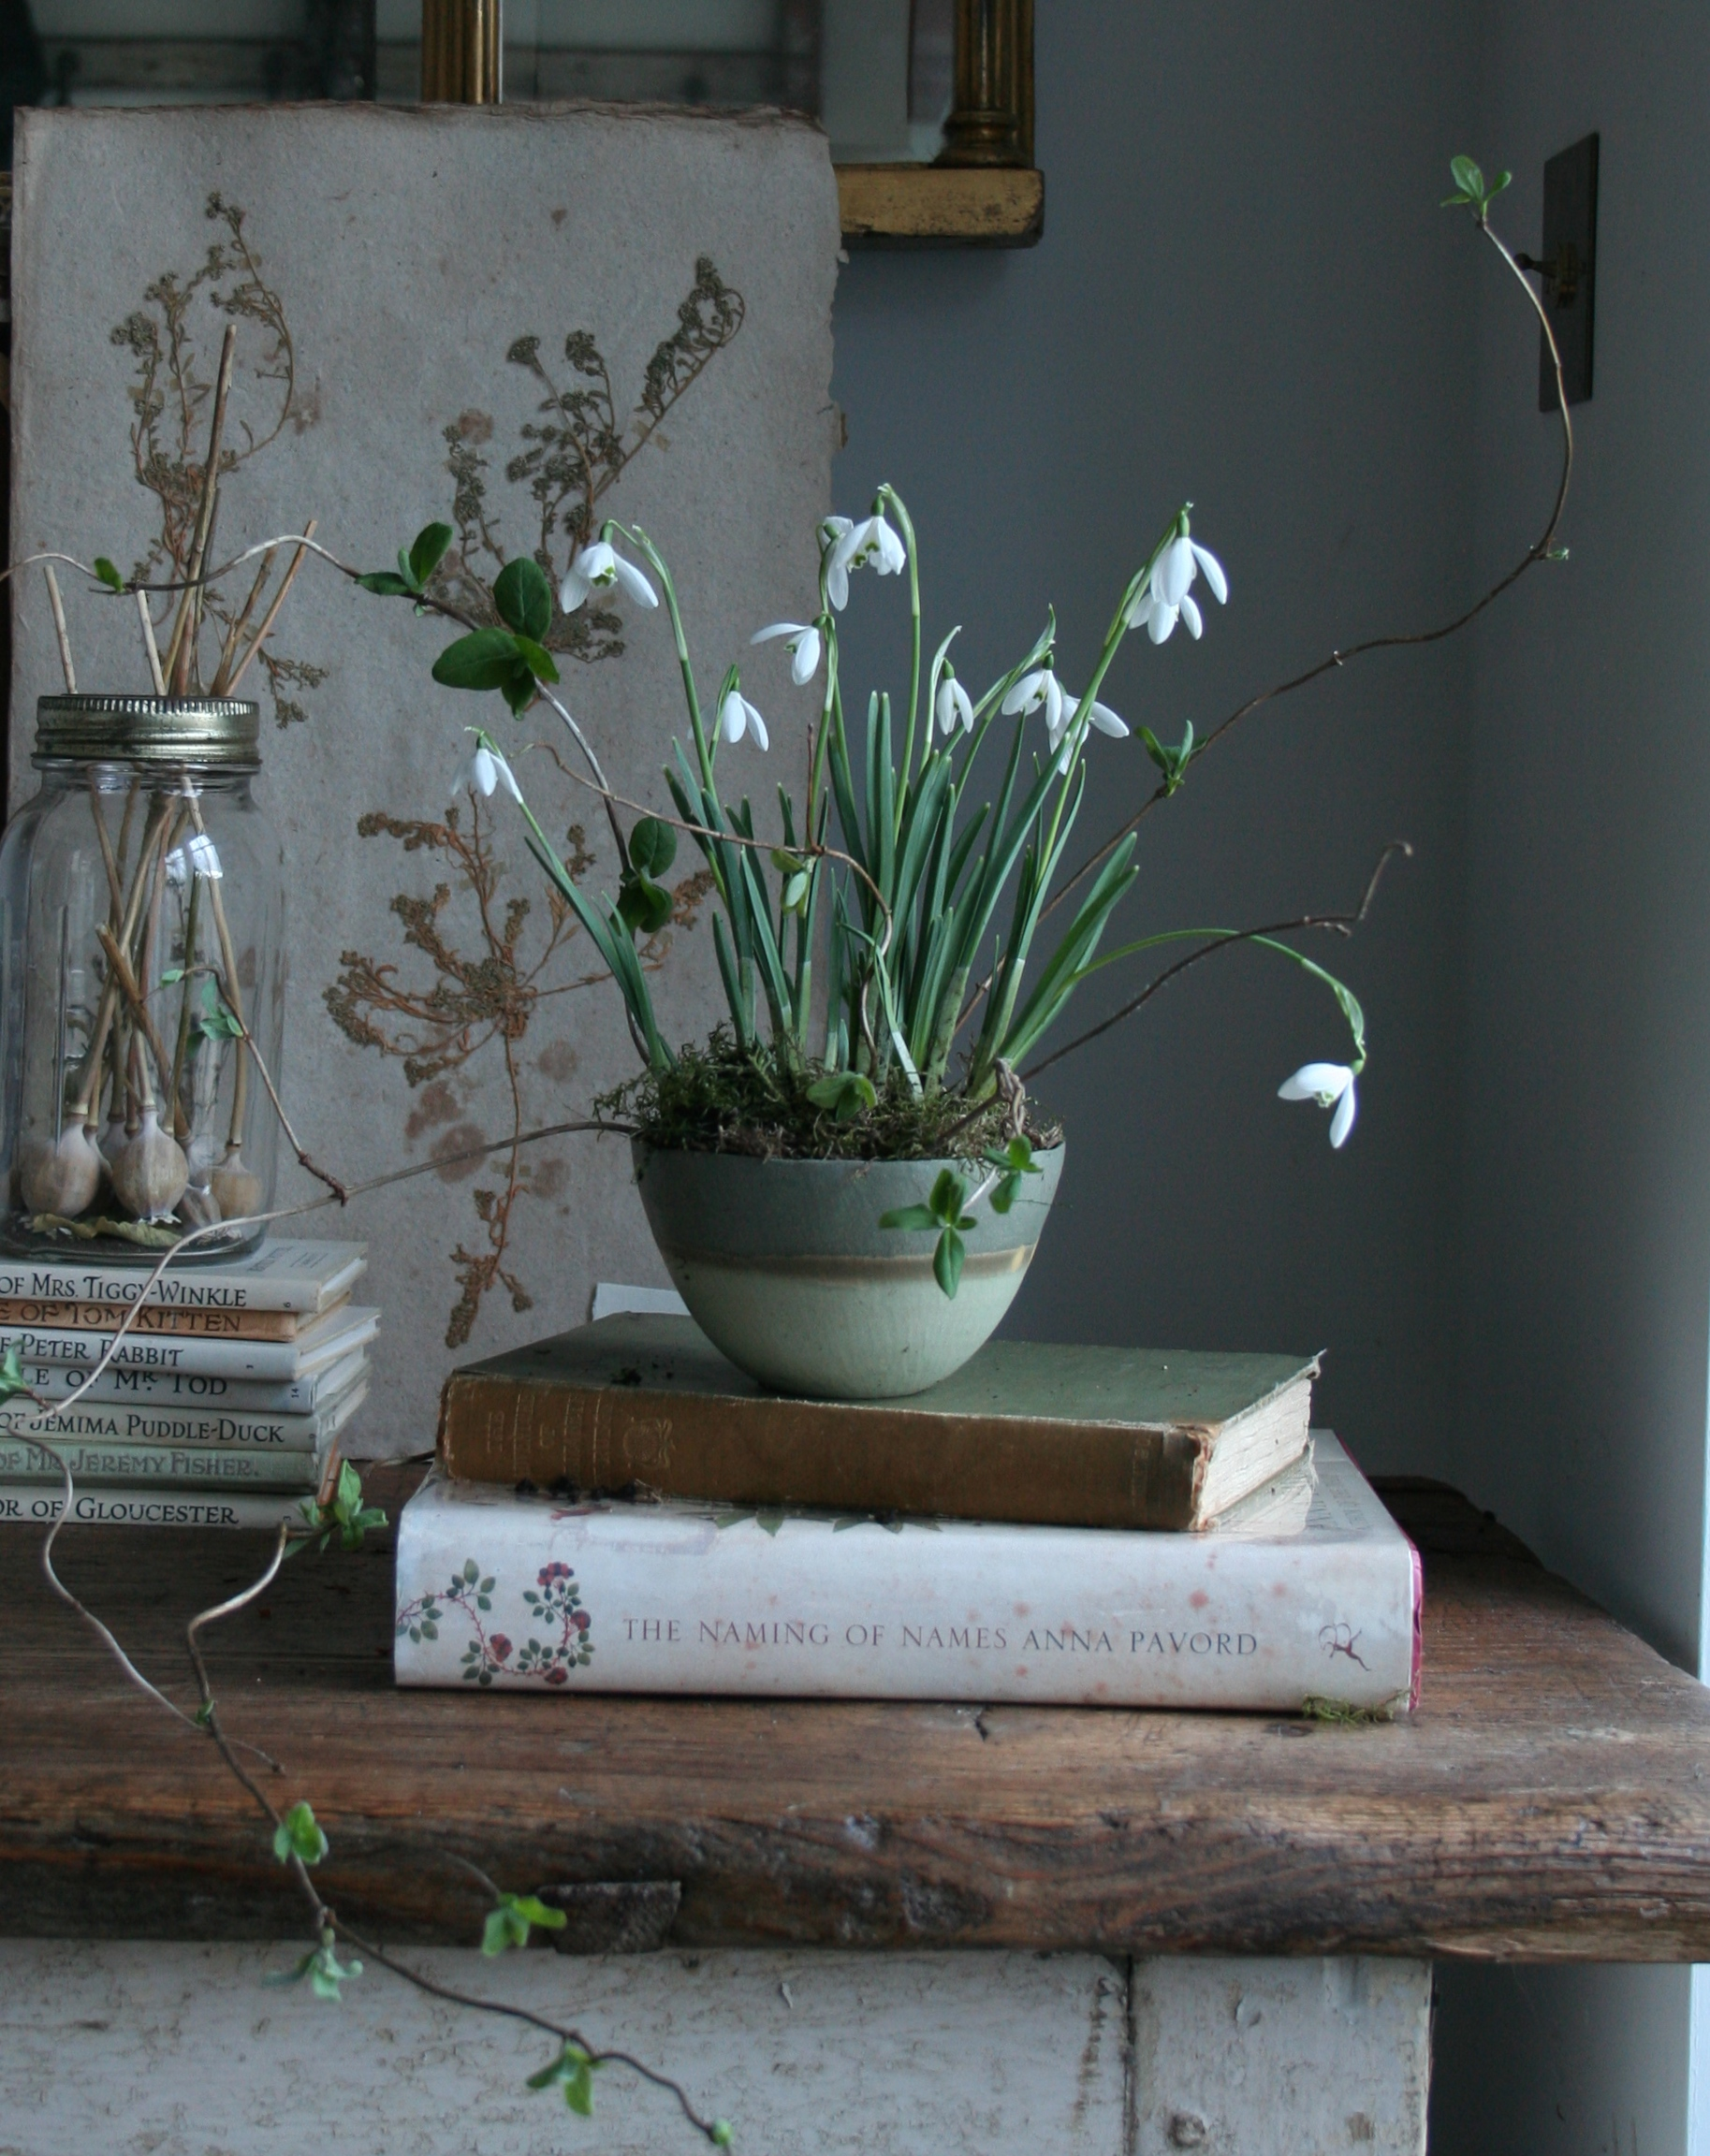 Snowdrops. Photo by Lucy